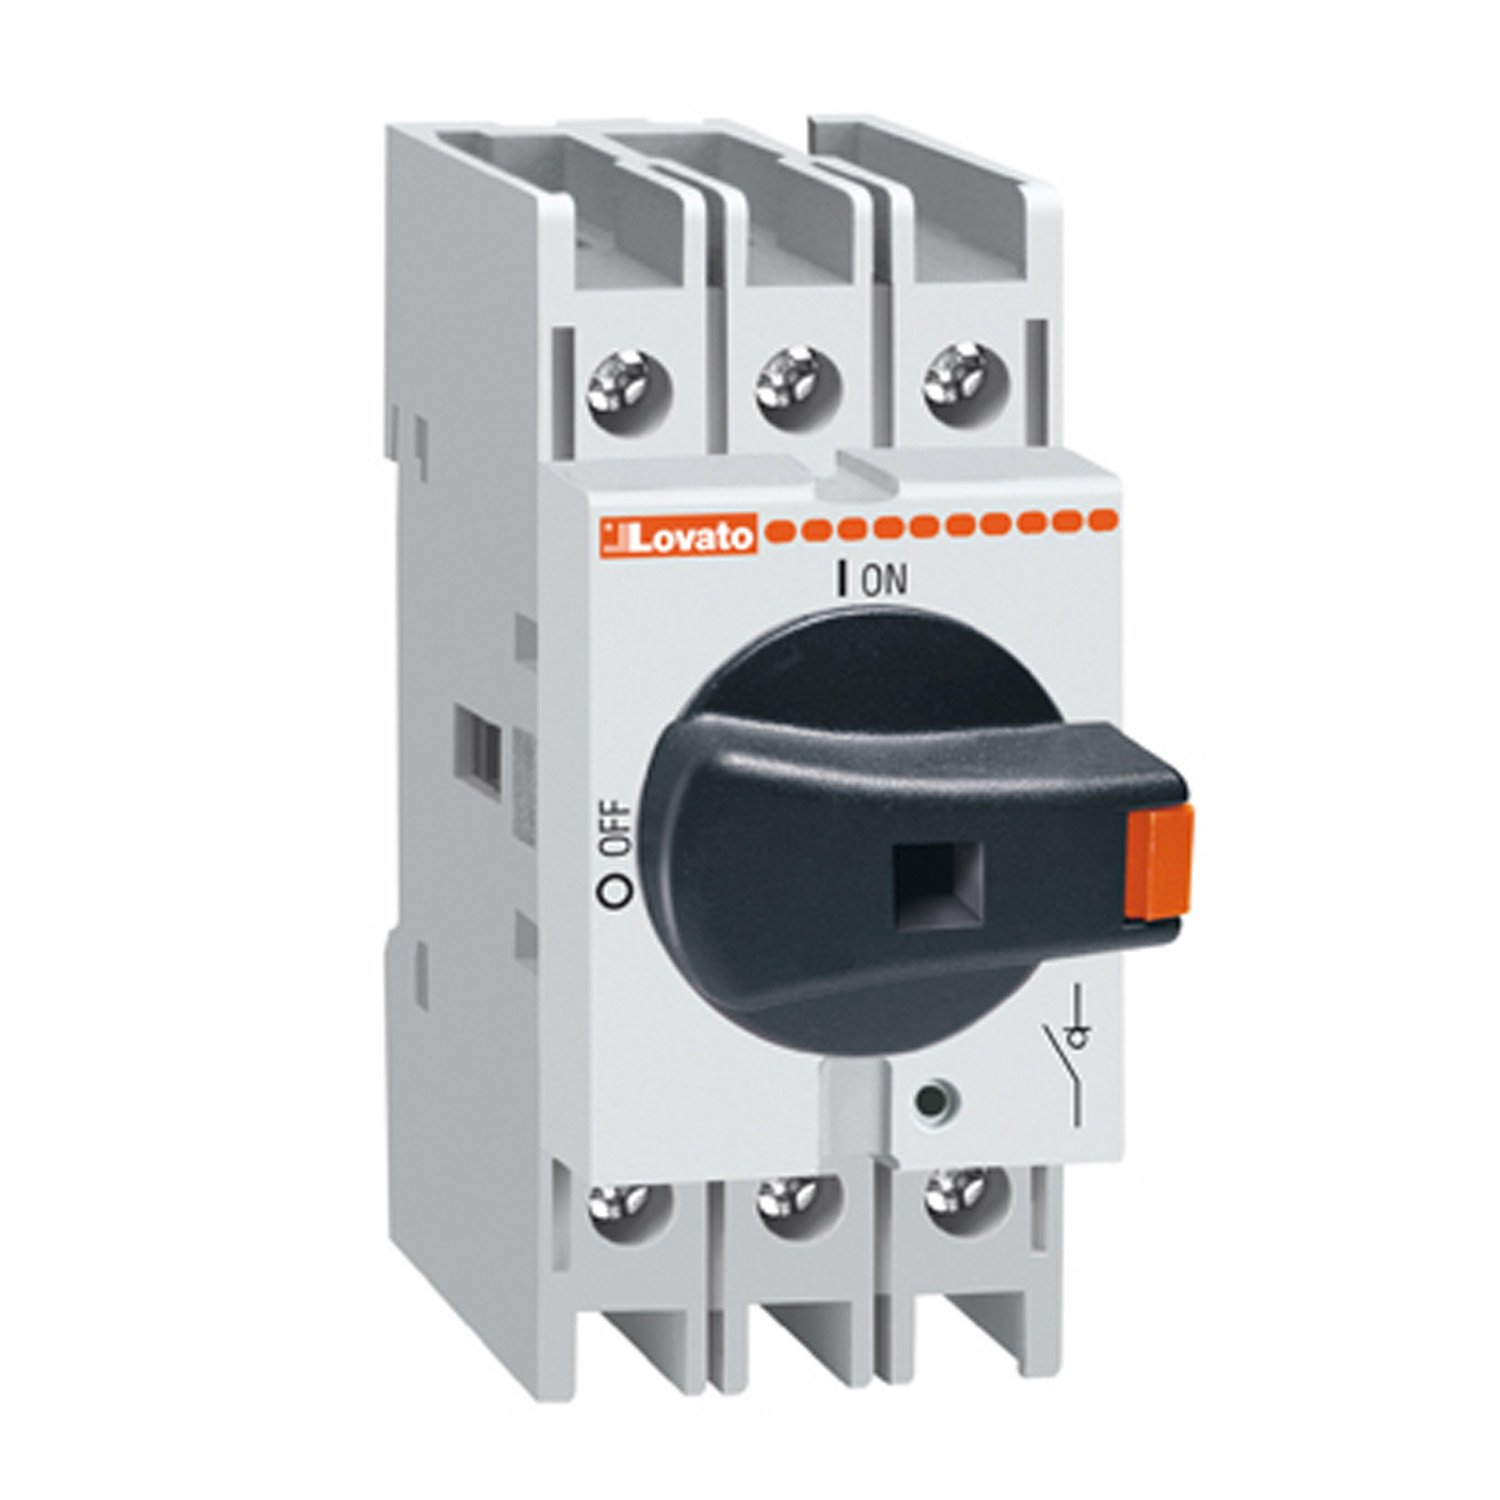 UL Listed 3 Pole 32 Amp ASI GA032A Disconnect Switch Panel Mount